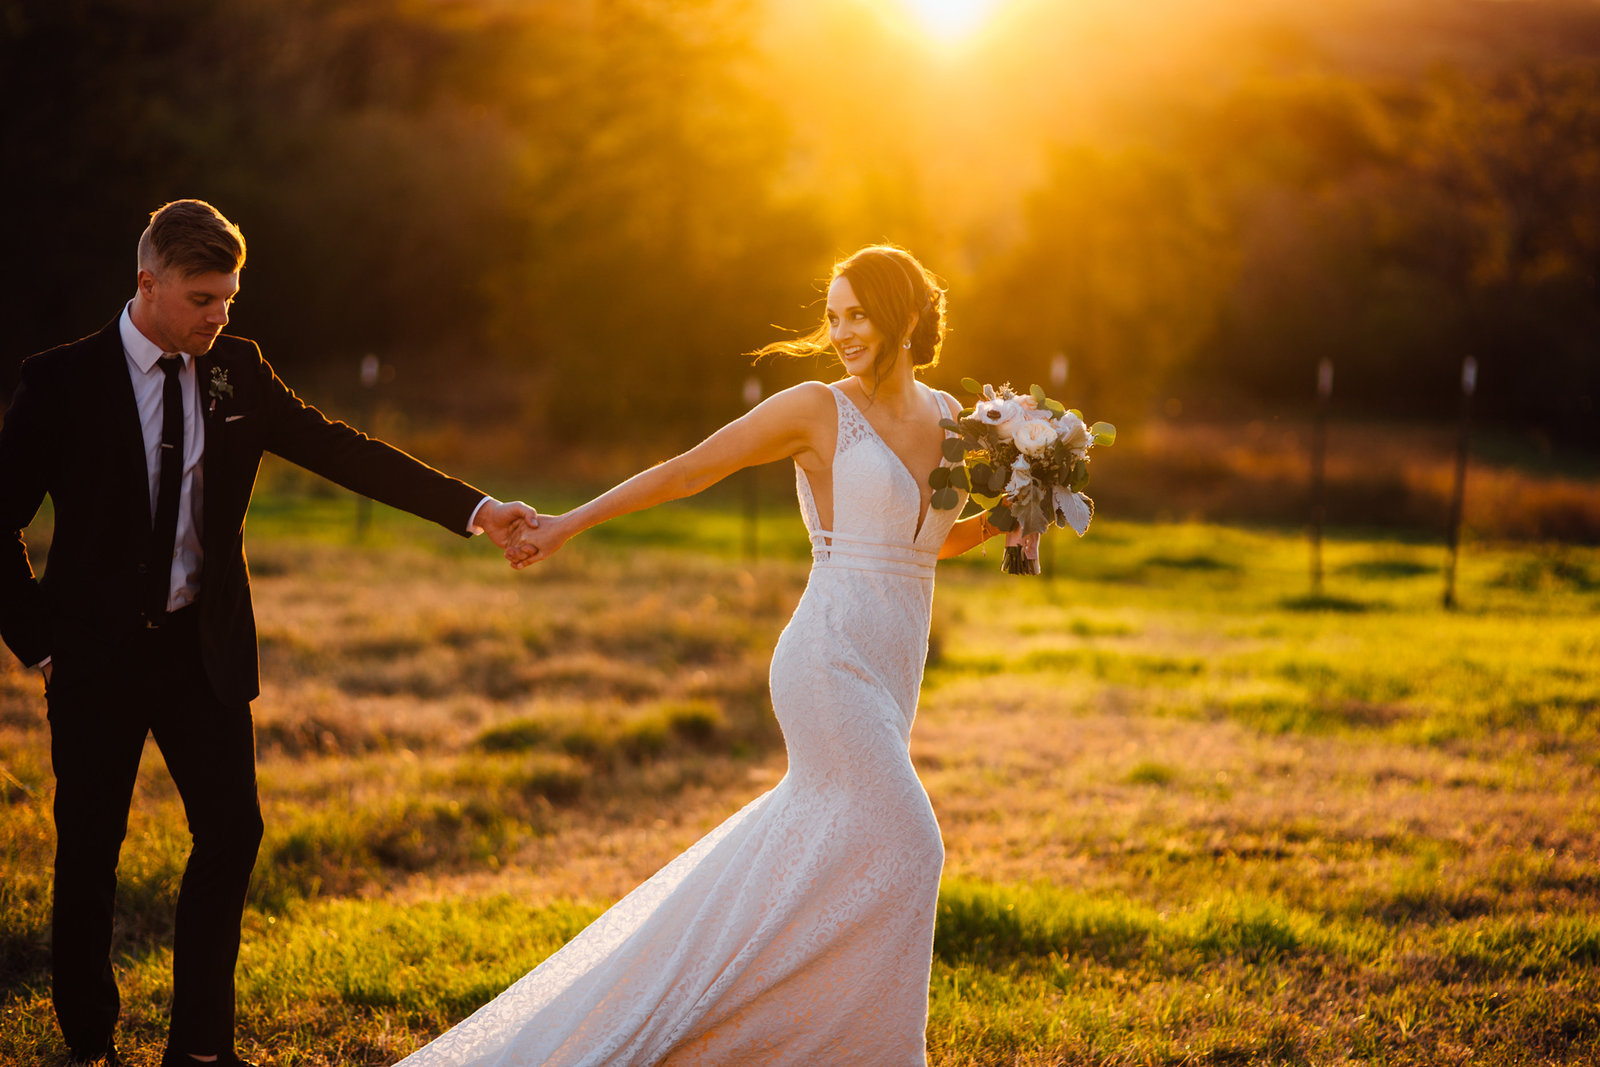 Bride leading groom through field during golden hour